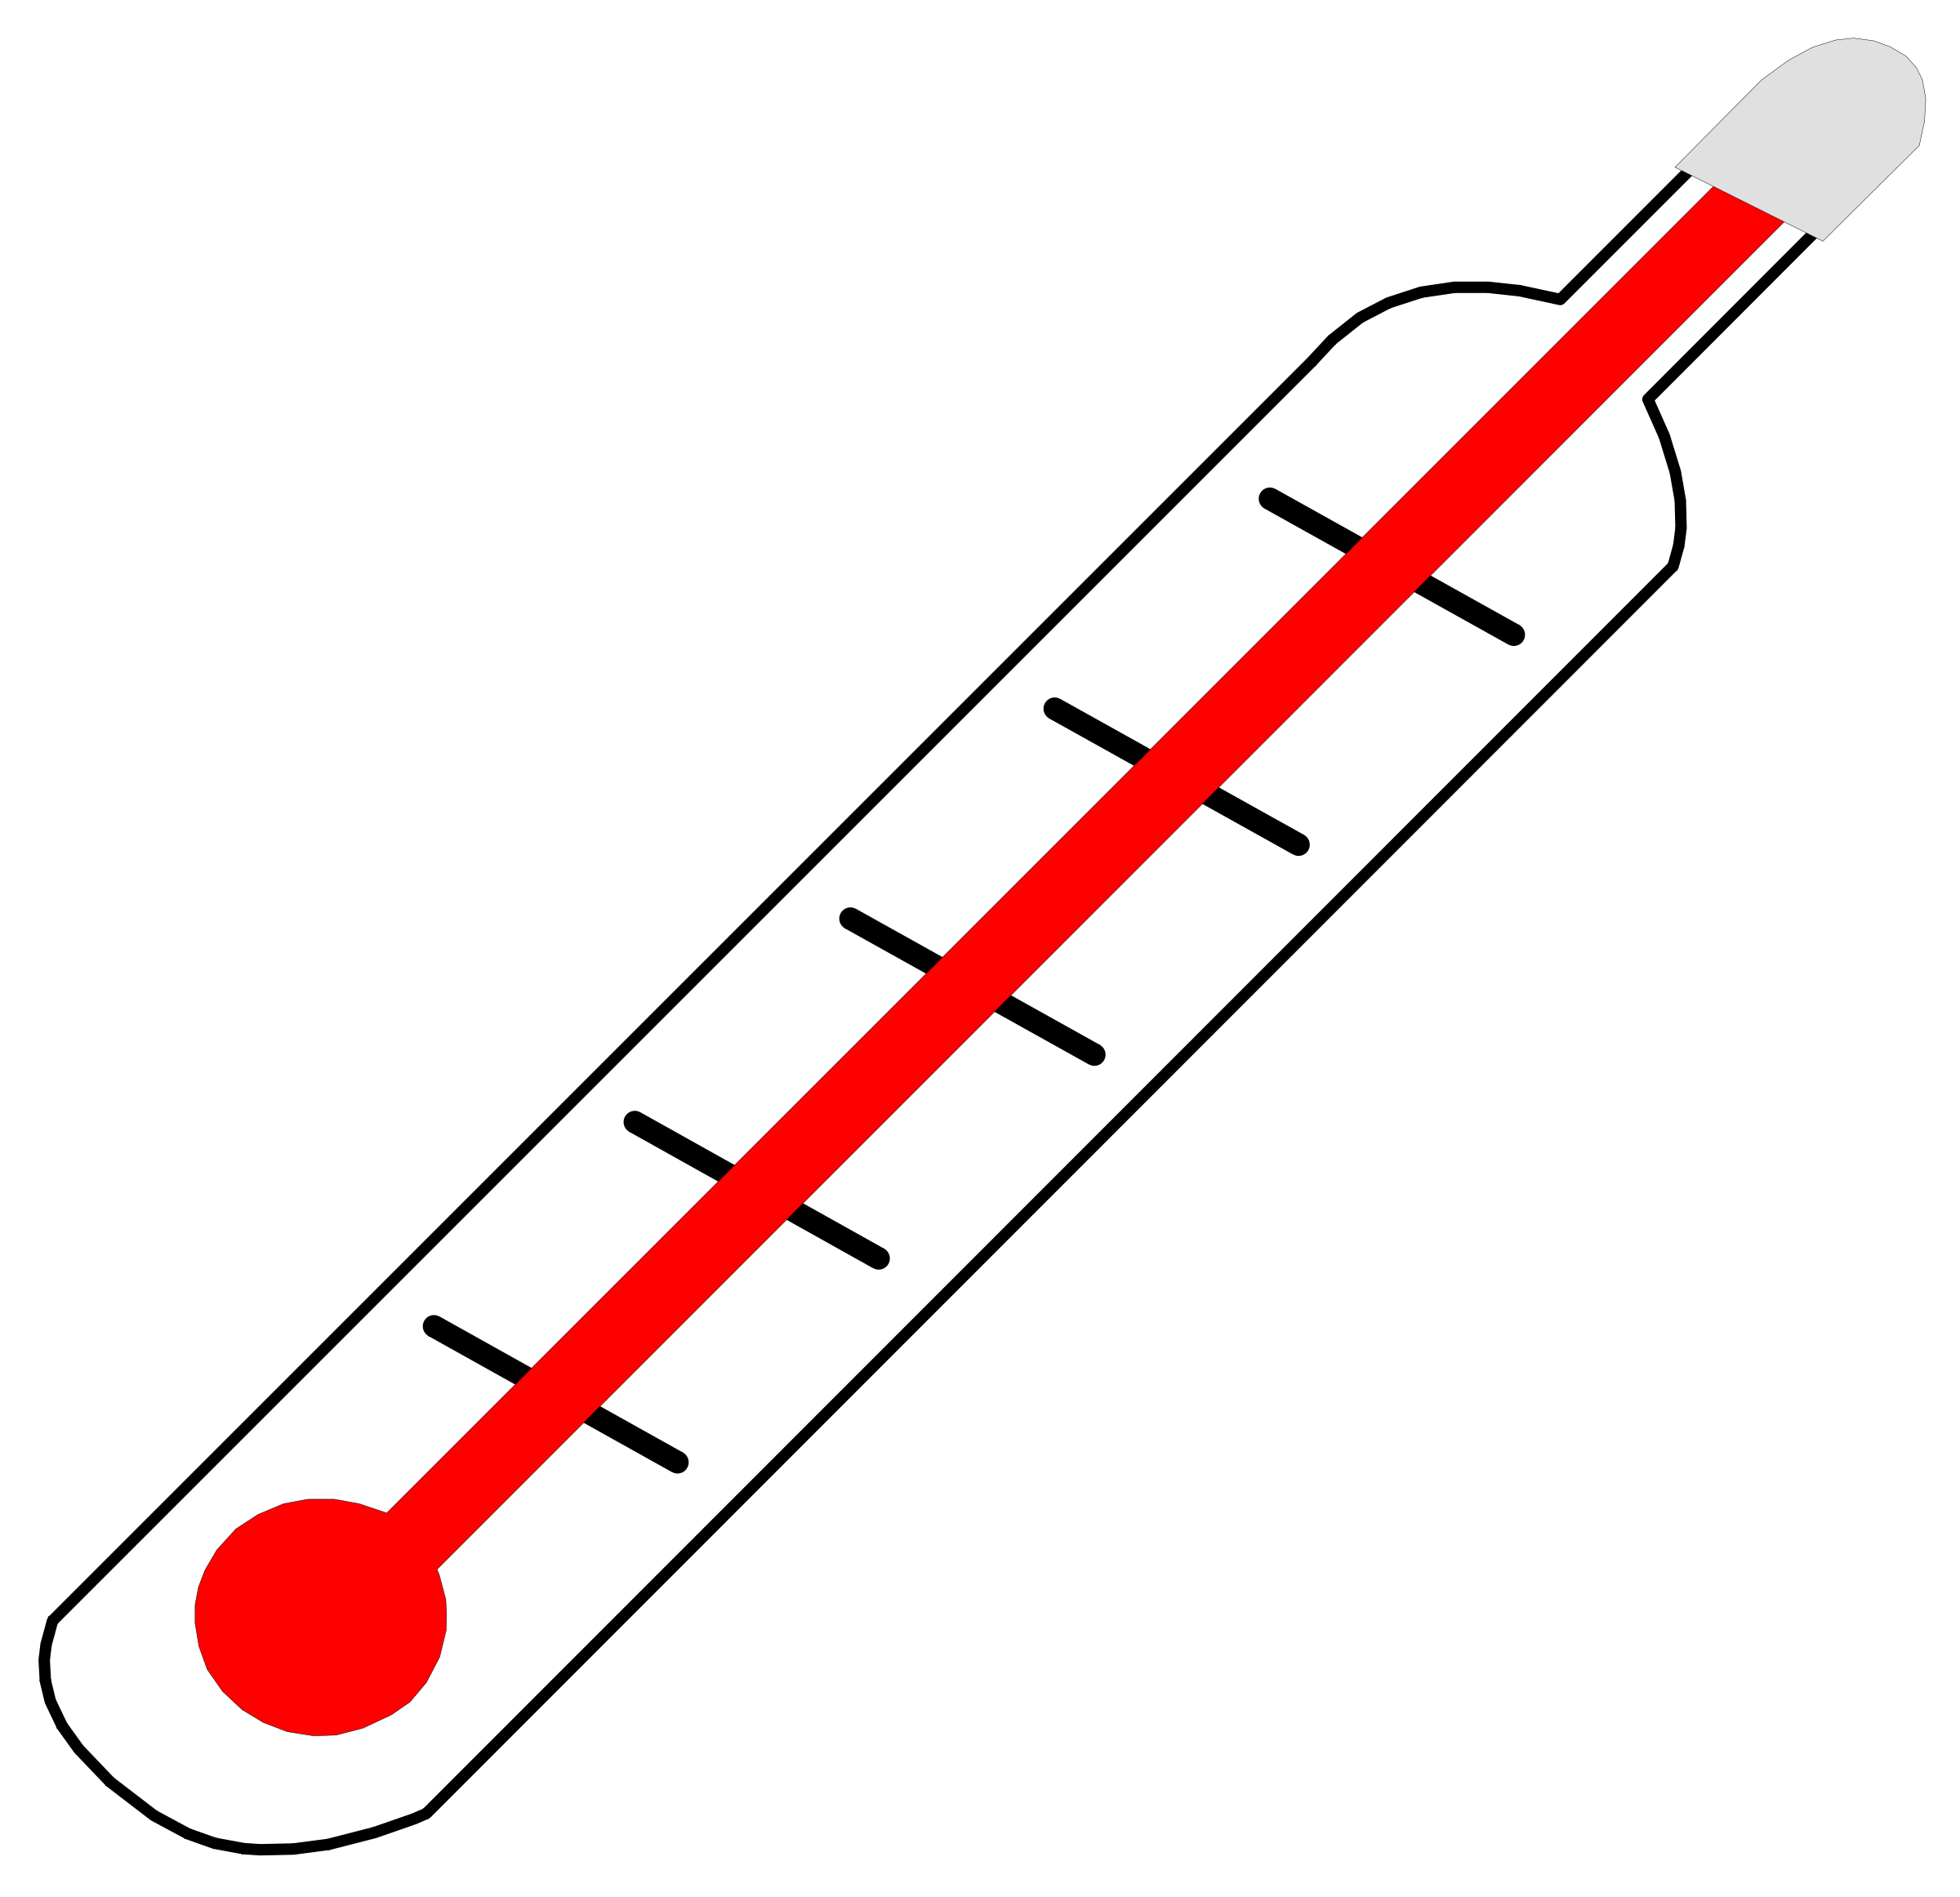 Thermometer template free download best thermometer template on 2400x2323 thermometer thermostat clipart free clipart images alramifo Images